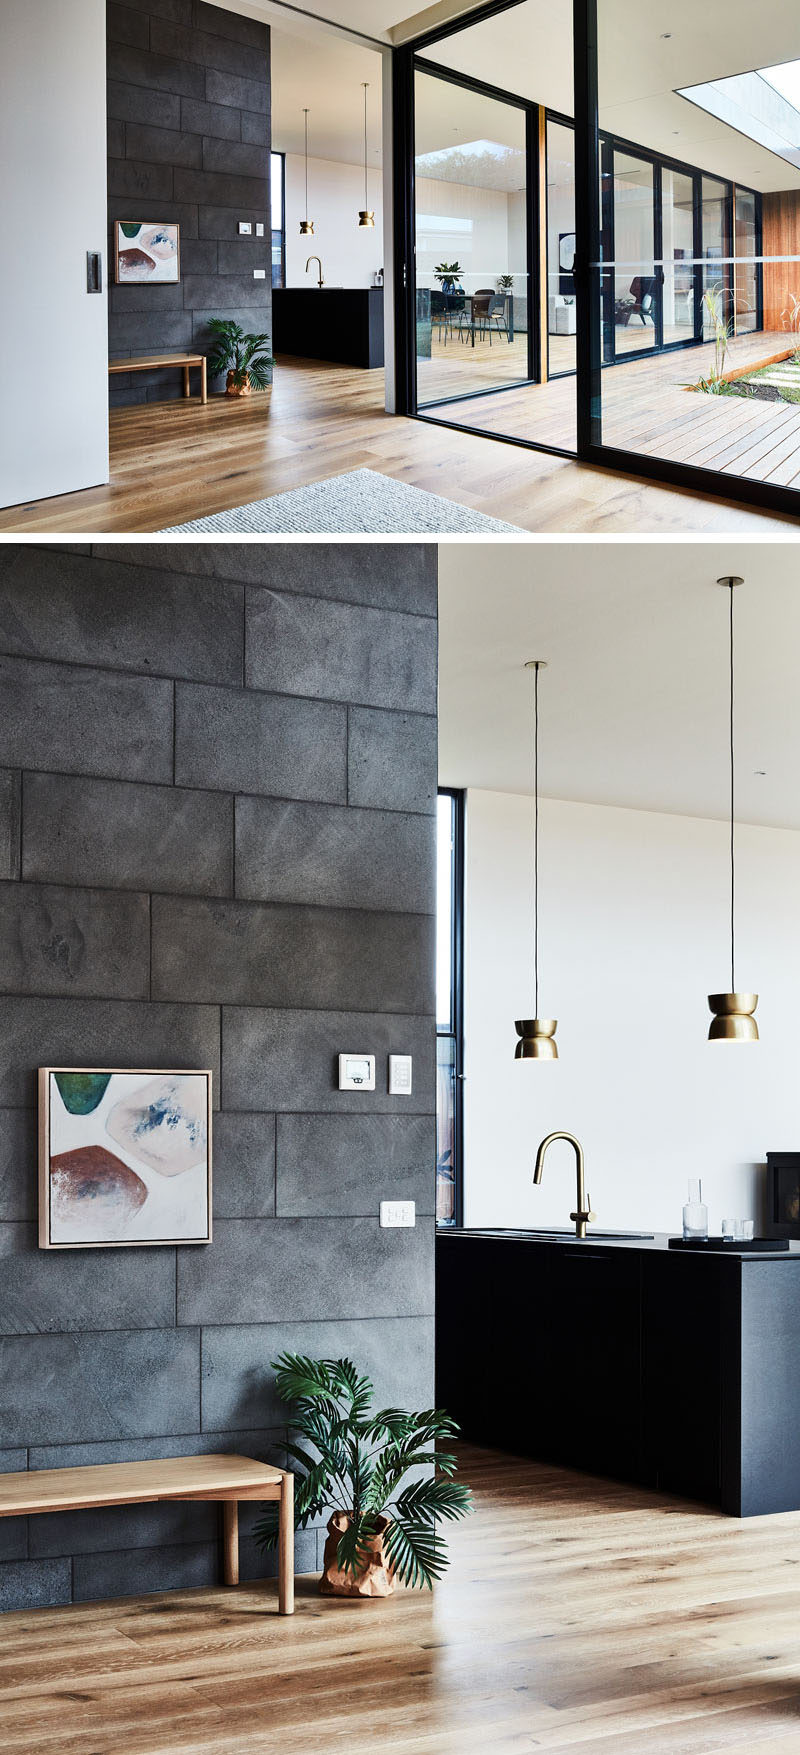 Stepping into this modern house, you become aware that the house wraps around an internal courtyard, while oak flooring adds a warm touch to the stone and black elements. #ModernHouse #InteriorDesign